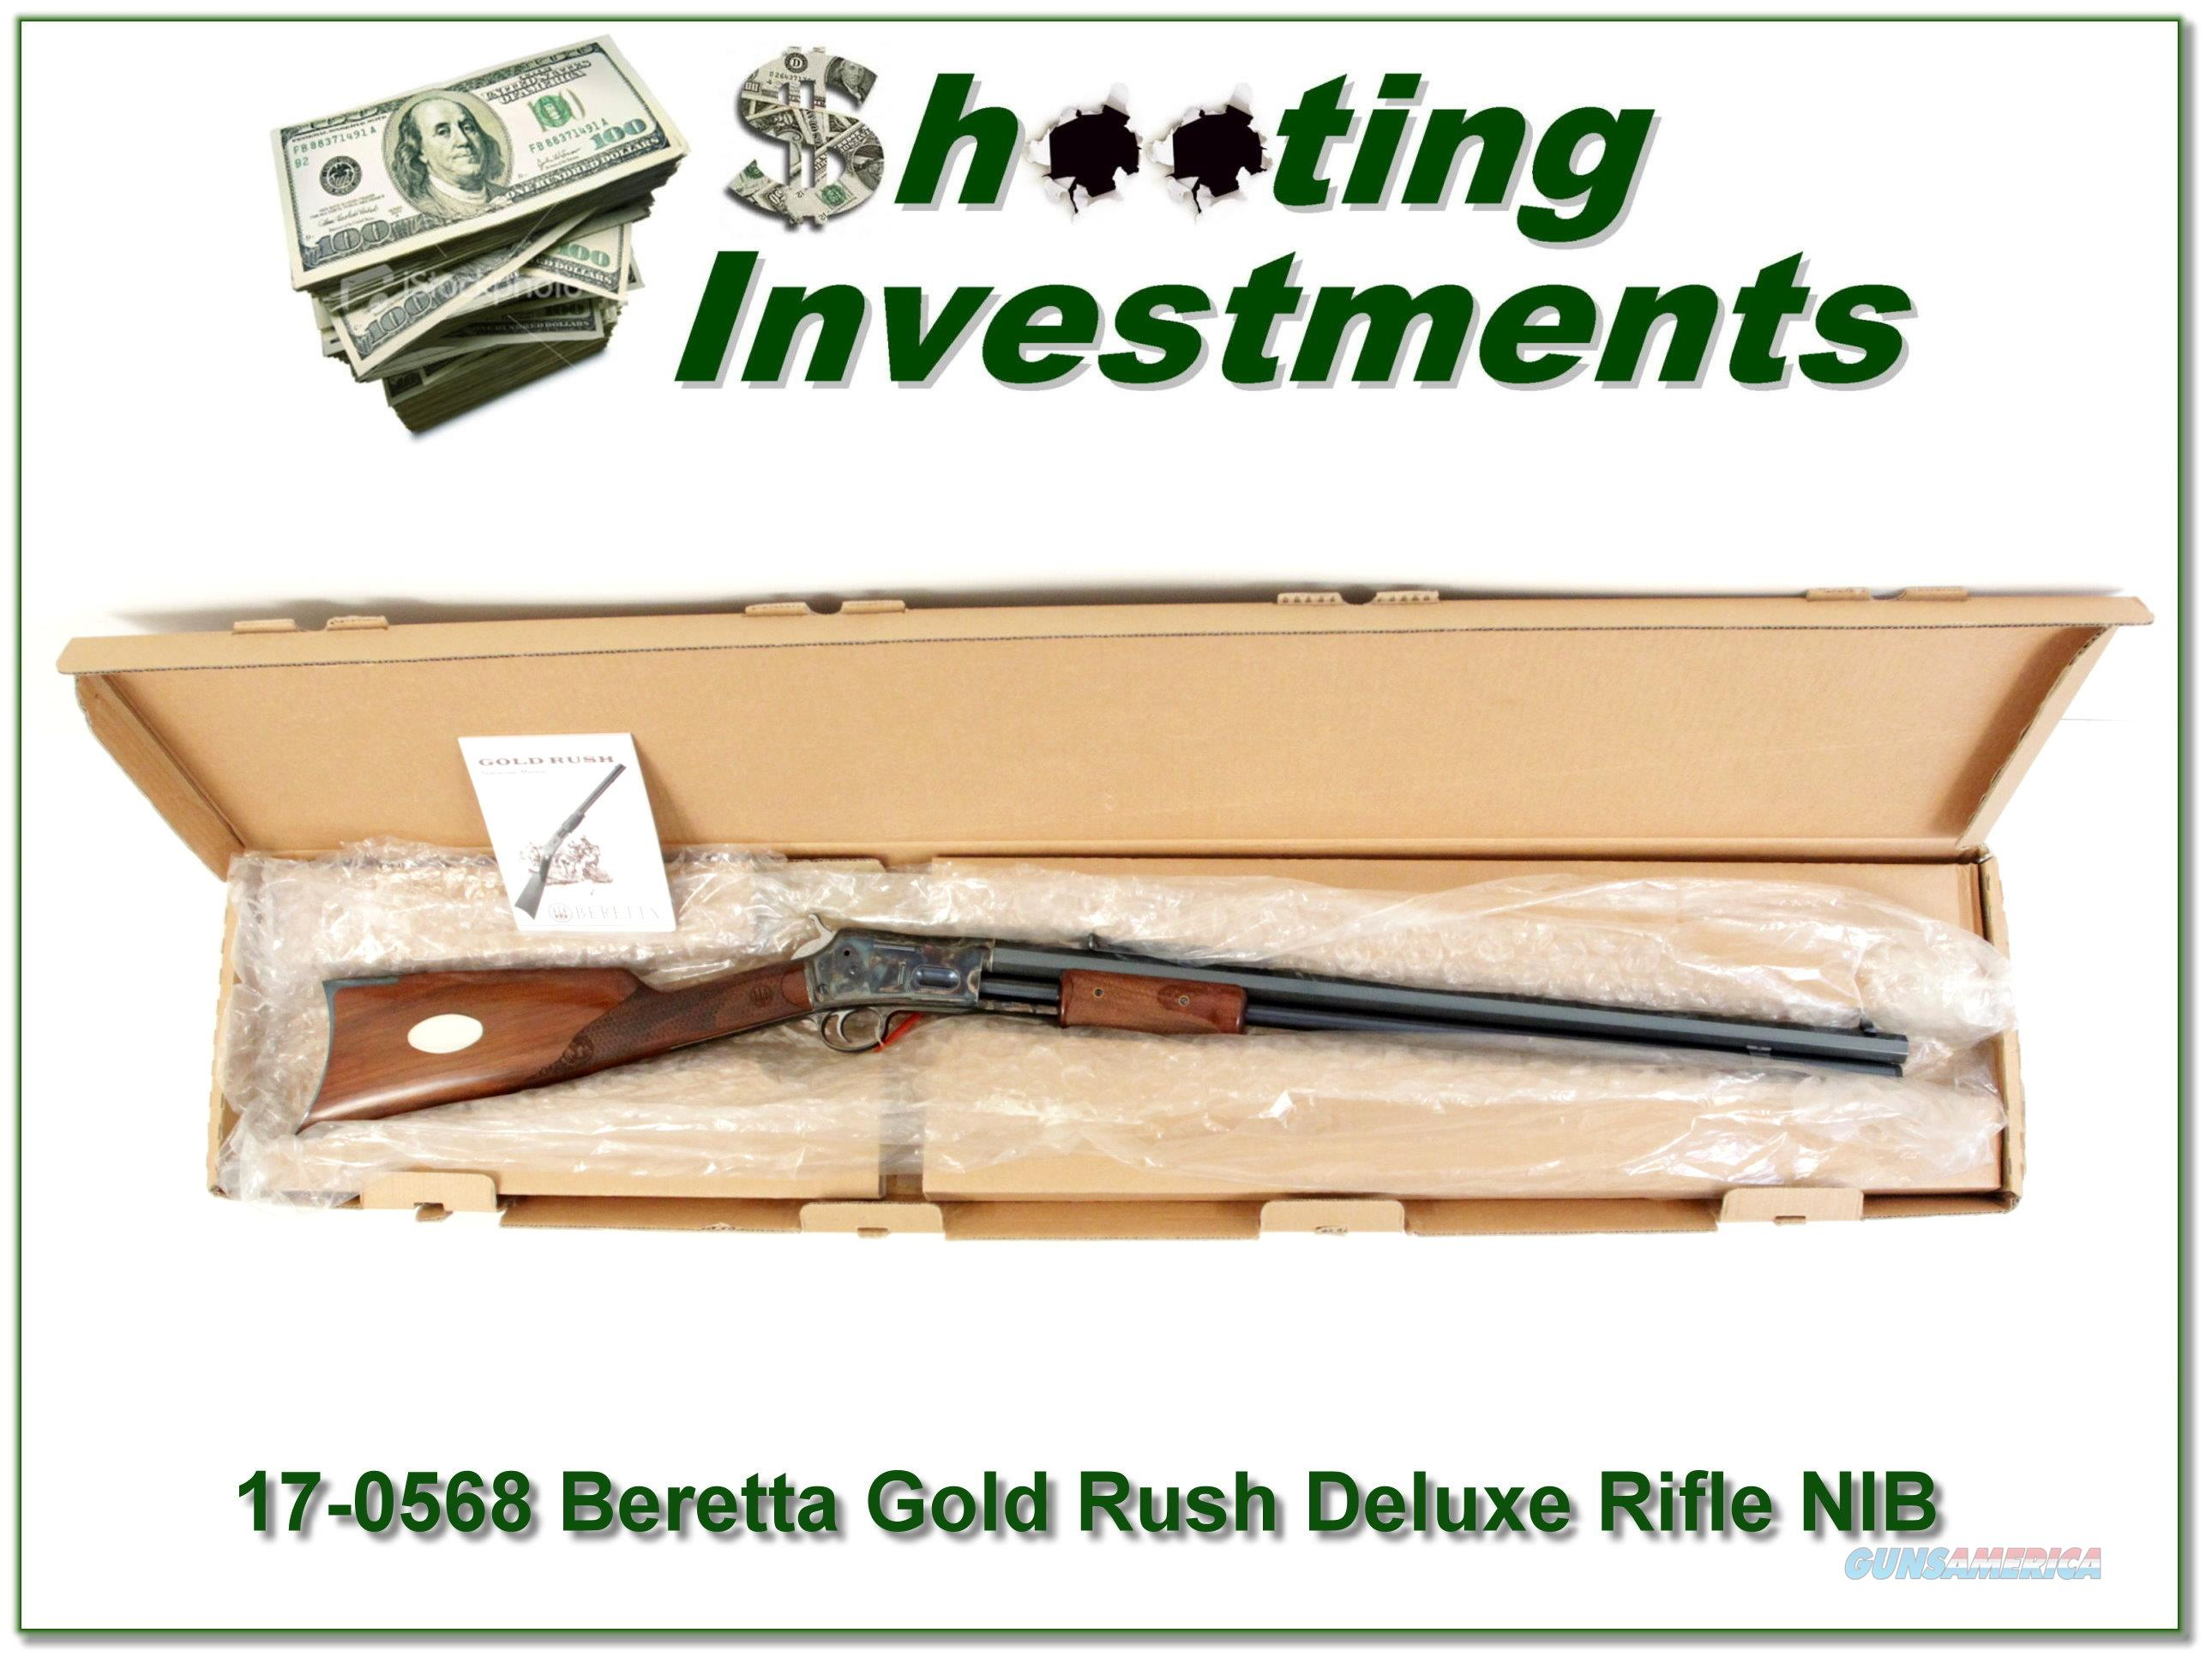 Beretta 7068 Gold Rush Deluxe Rifle NIB 45 Colt  Guns > Rifles > Beretta Rifles > Cowboy